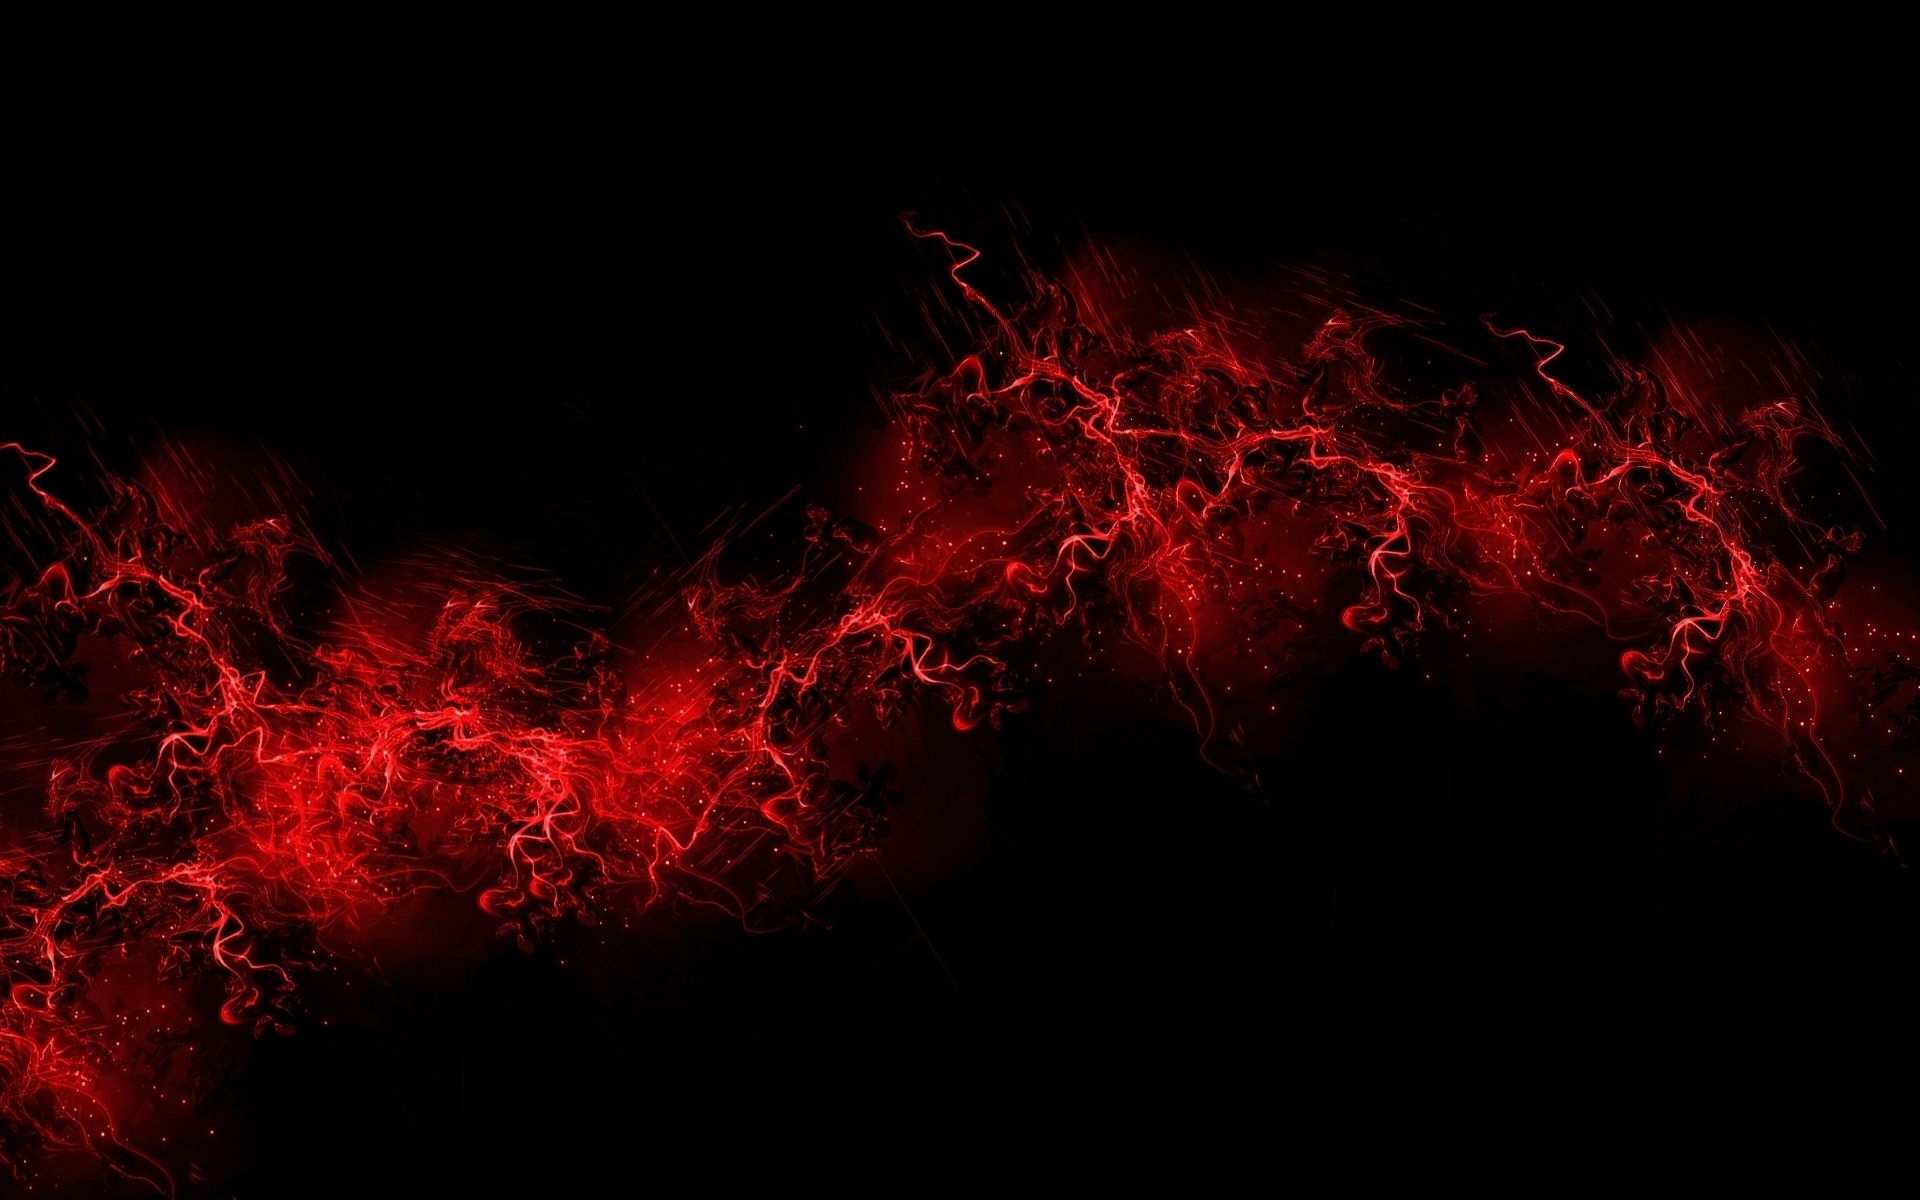 Red Black Background Hd Wallpaper